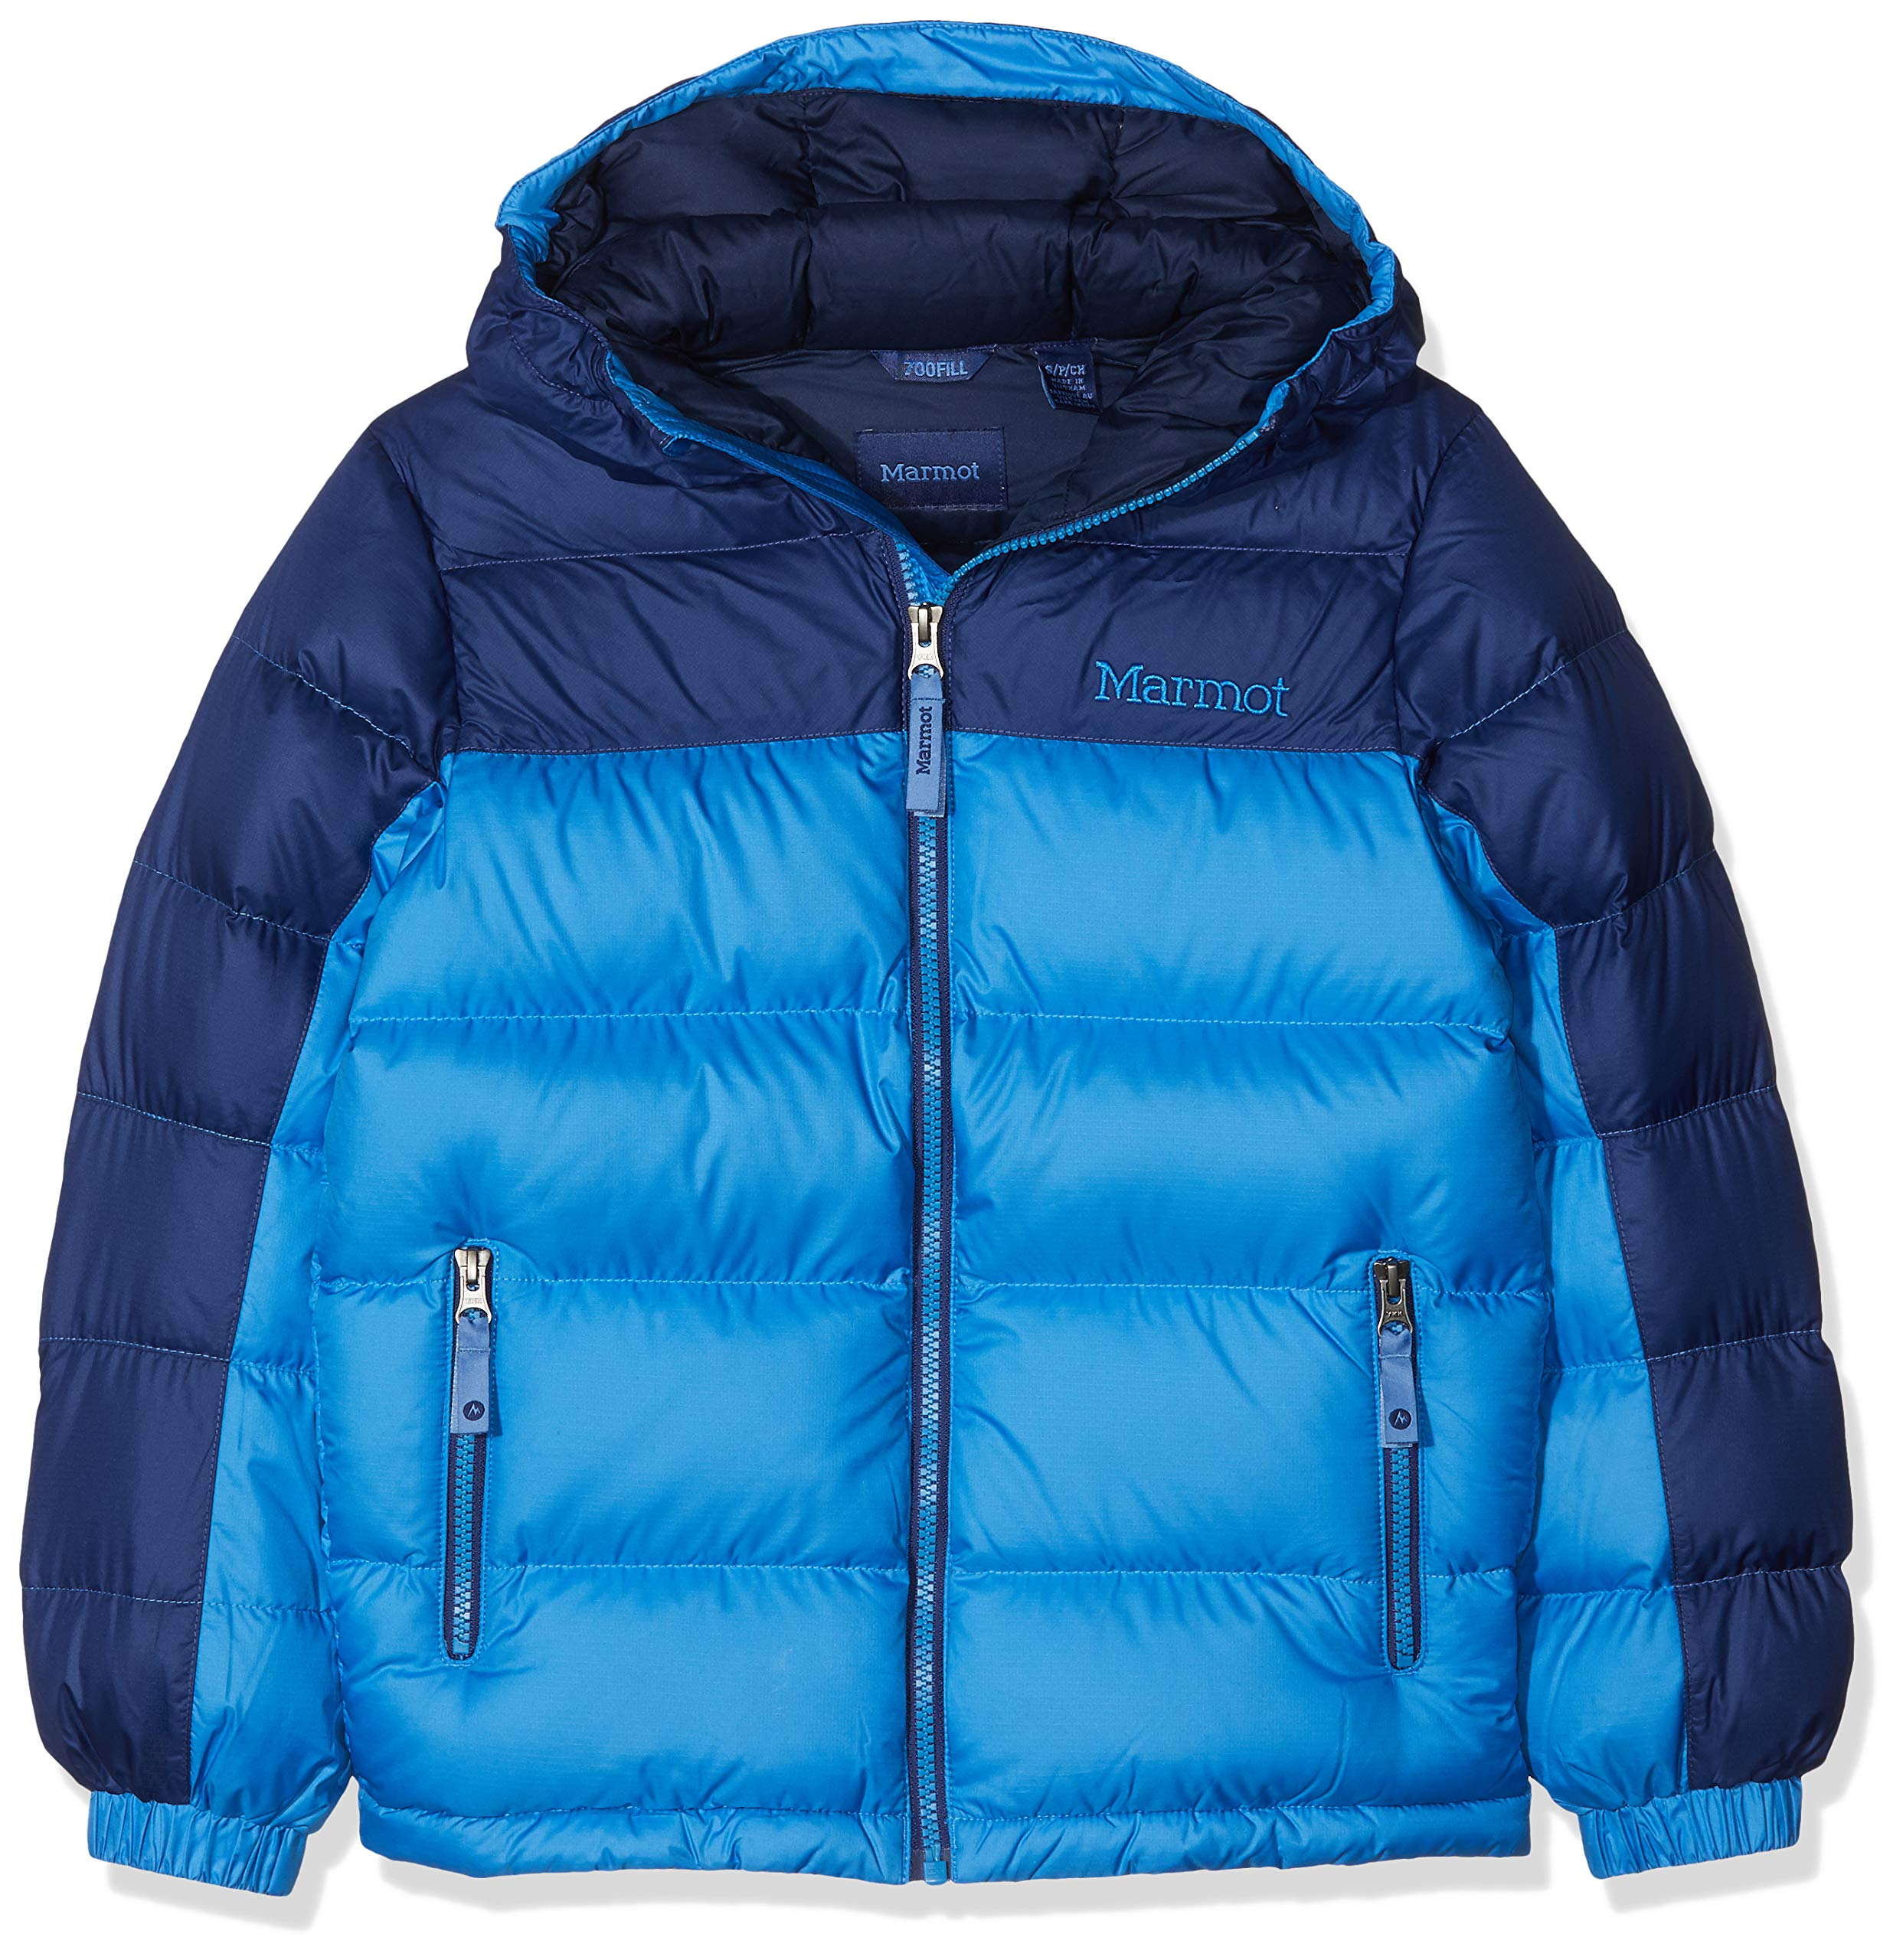 5a887b601eb8 Details about Marmot Boy s Guides Down Hoody Puffer Jacket with Hood